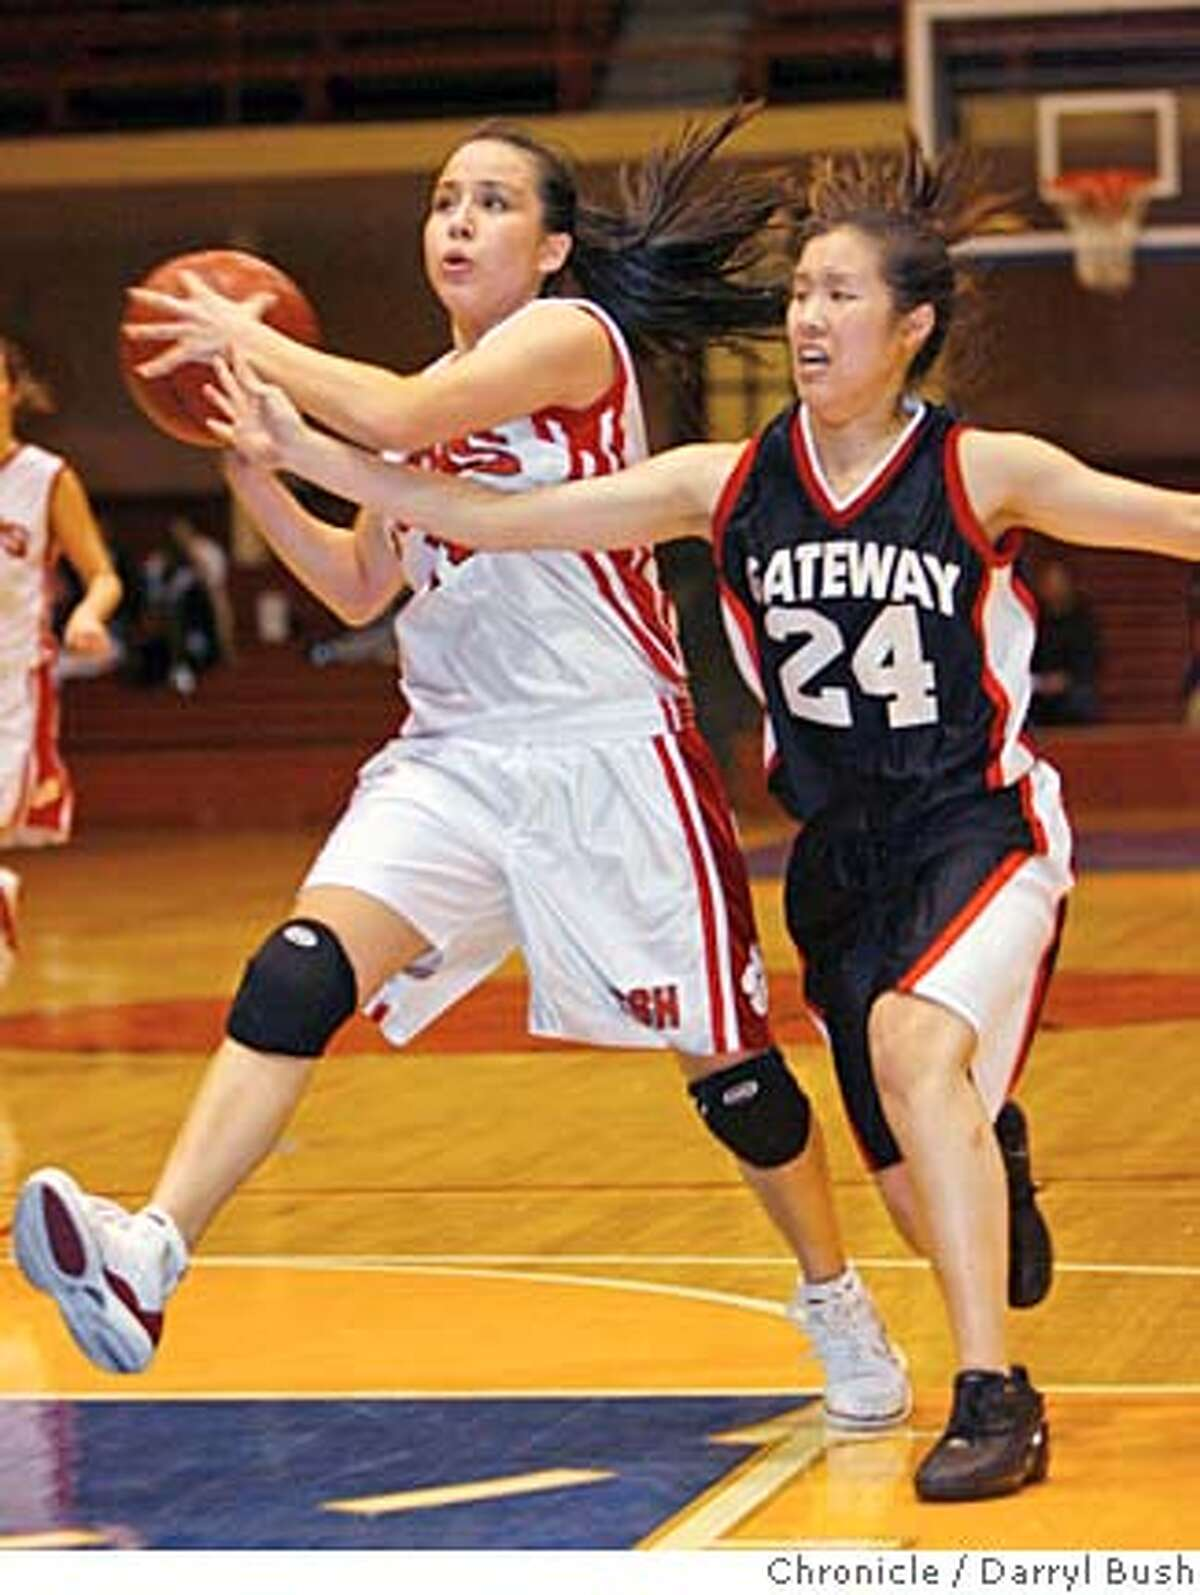 bcl25_0002_db.JPG Convent of the Sacred Heart's Jen Hum-Traverso drives as Gateway's Alyson Szeto can't stop her in the second quarter of play. Convent of the Sacred Heart High School vs. Gateway High School at Kezar Pavilion. Convent of the Sacred Heart wins BCL championship. Event on 2/24/06 in San Francisco. Darryl Bush / The Chronicle MANDATORY CREDIT FOR PHOTOG AND SF CHRONICLE/ -MAGS OUT